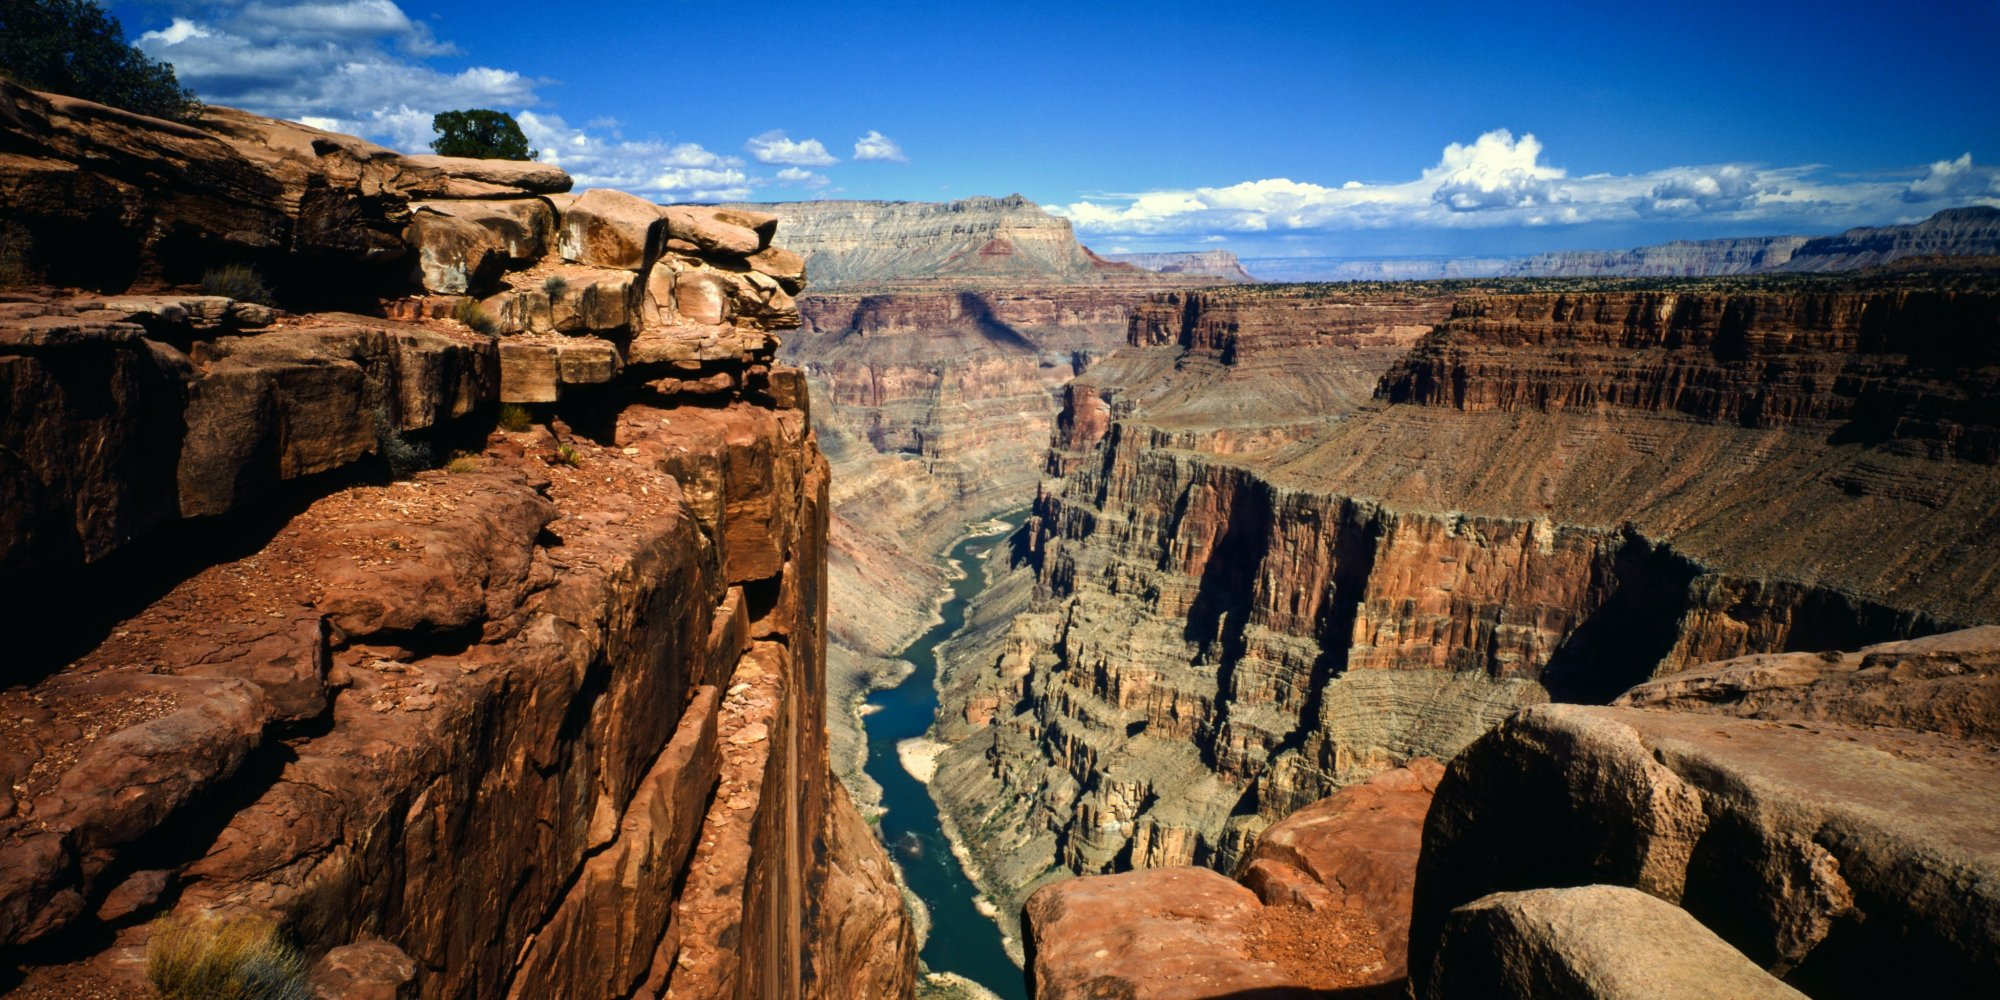 Grand Canyon Travel: 5 Things to Remember